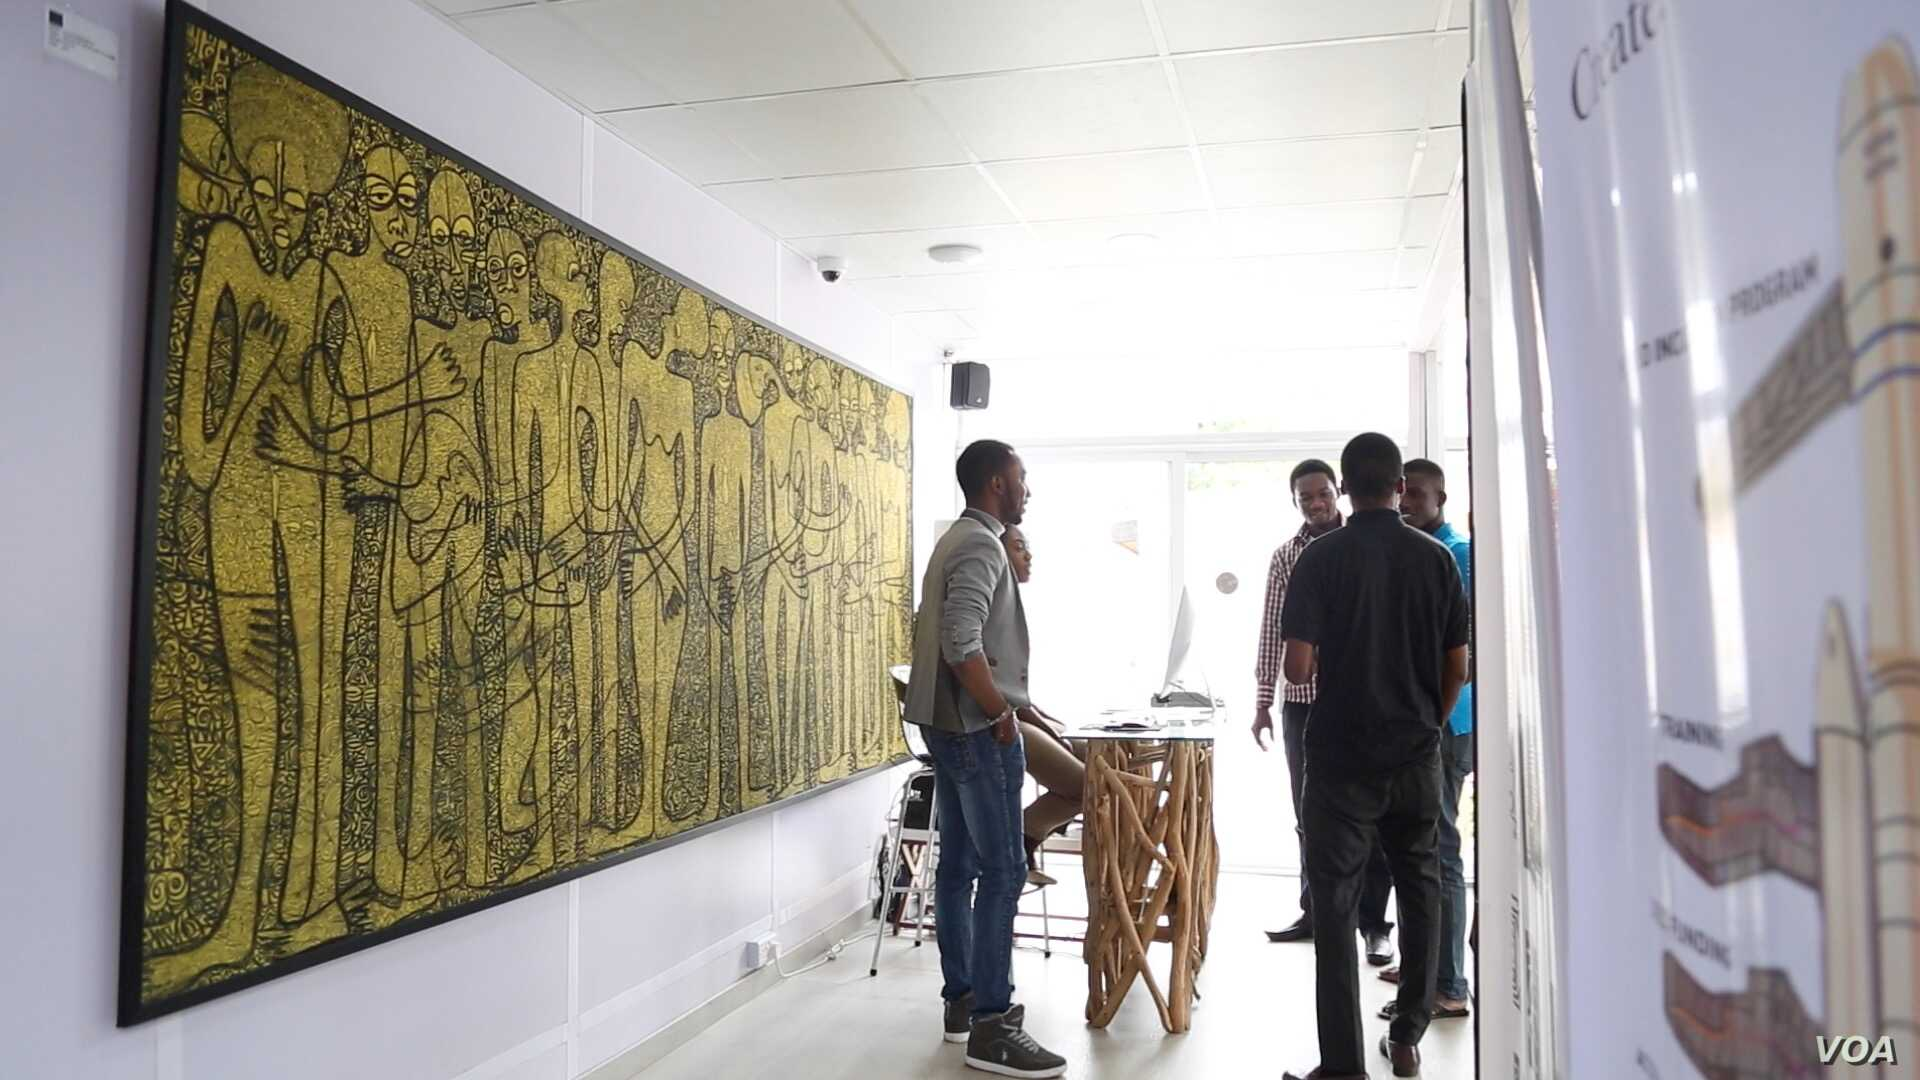 Ventures Platform, seen Sept. 2, 2016, is a new public workspace and incubator that offers support for startup companies in Abuja, Nigeria. (C. Oduah/VOA)